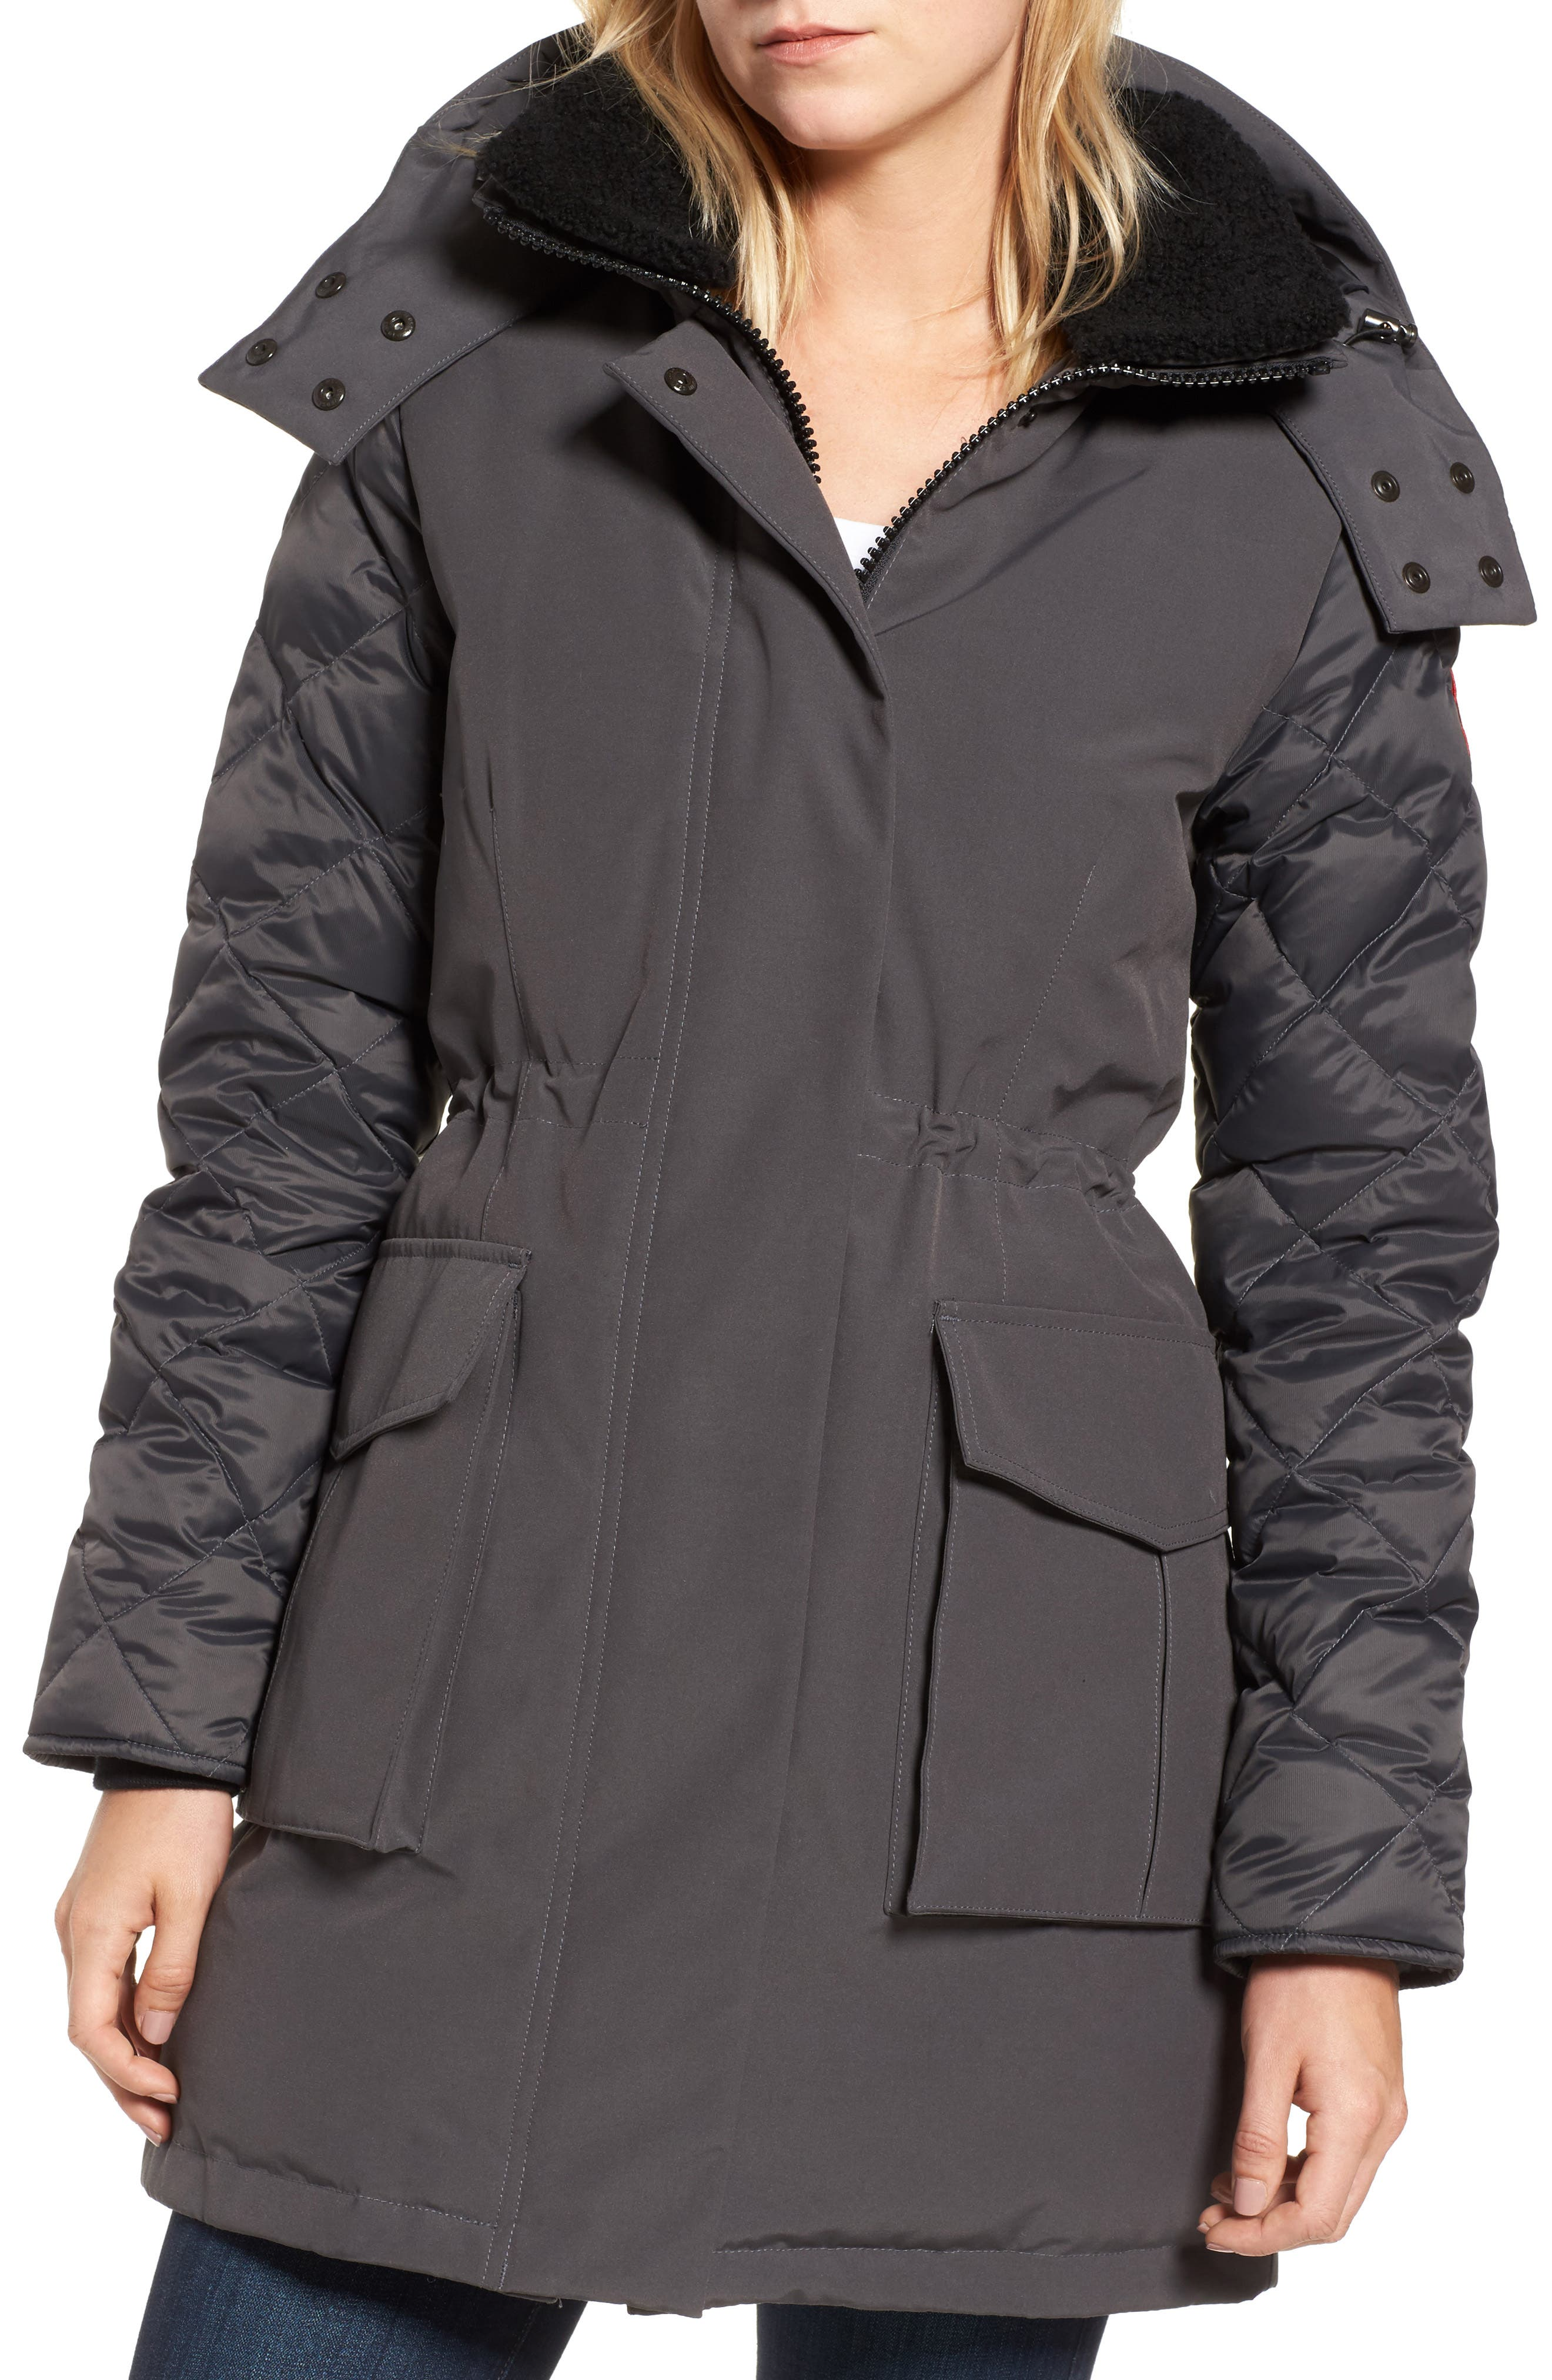 CANADA GOOSE, Elwin Power Fill Down Jacket, Alternate thumbnail 5, color, GRAPHITE